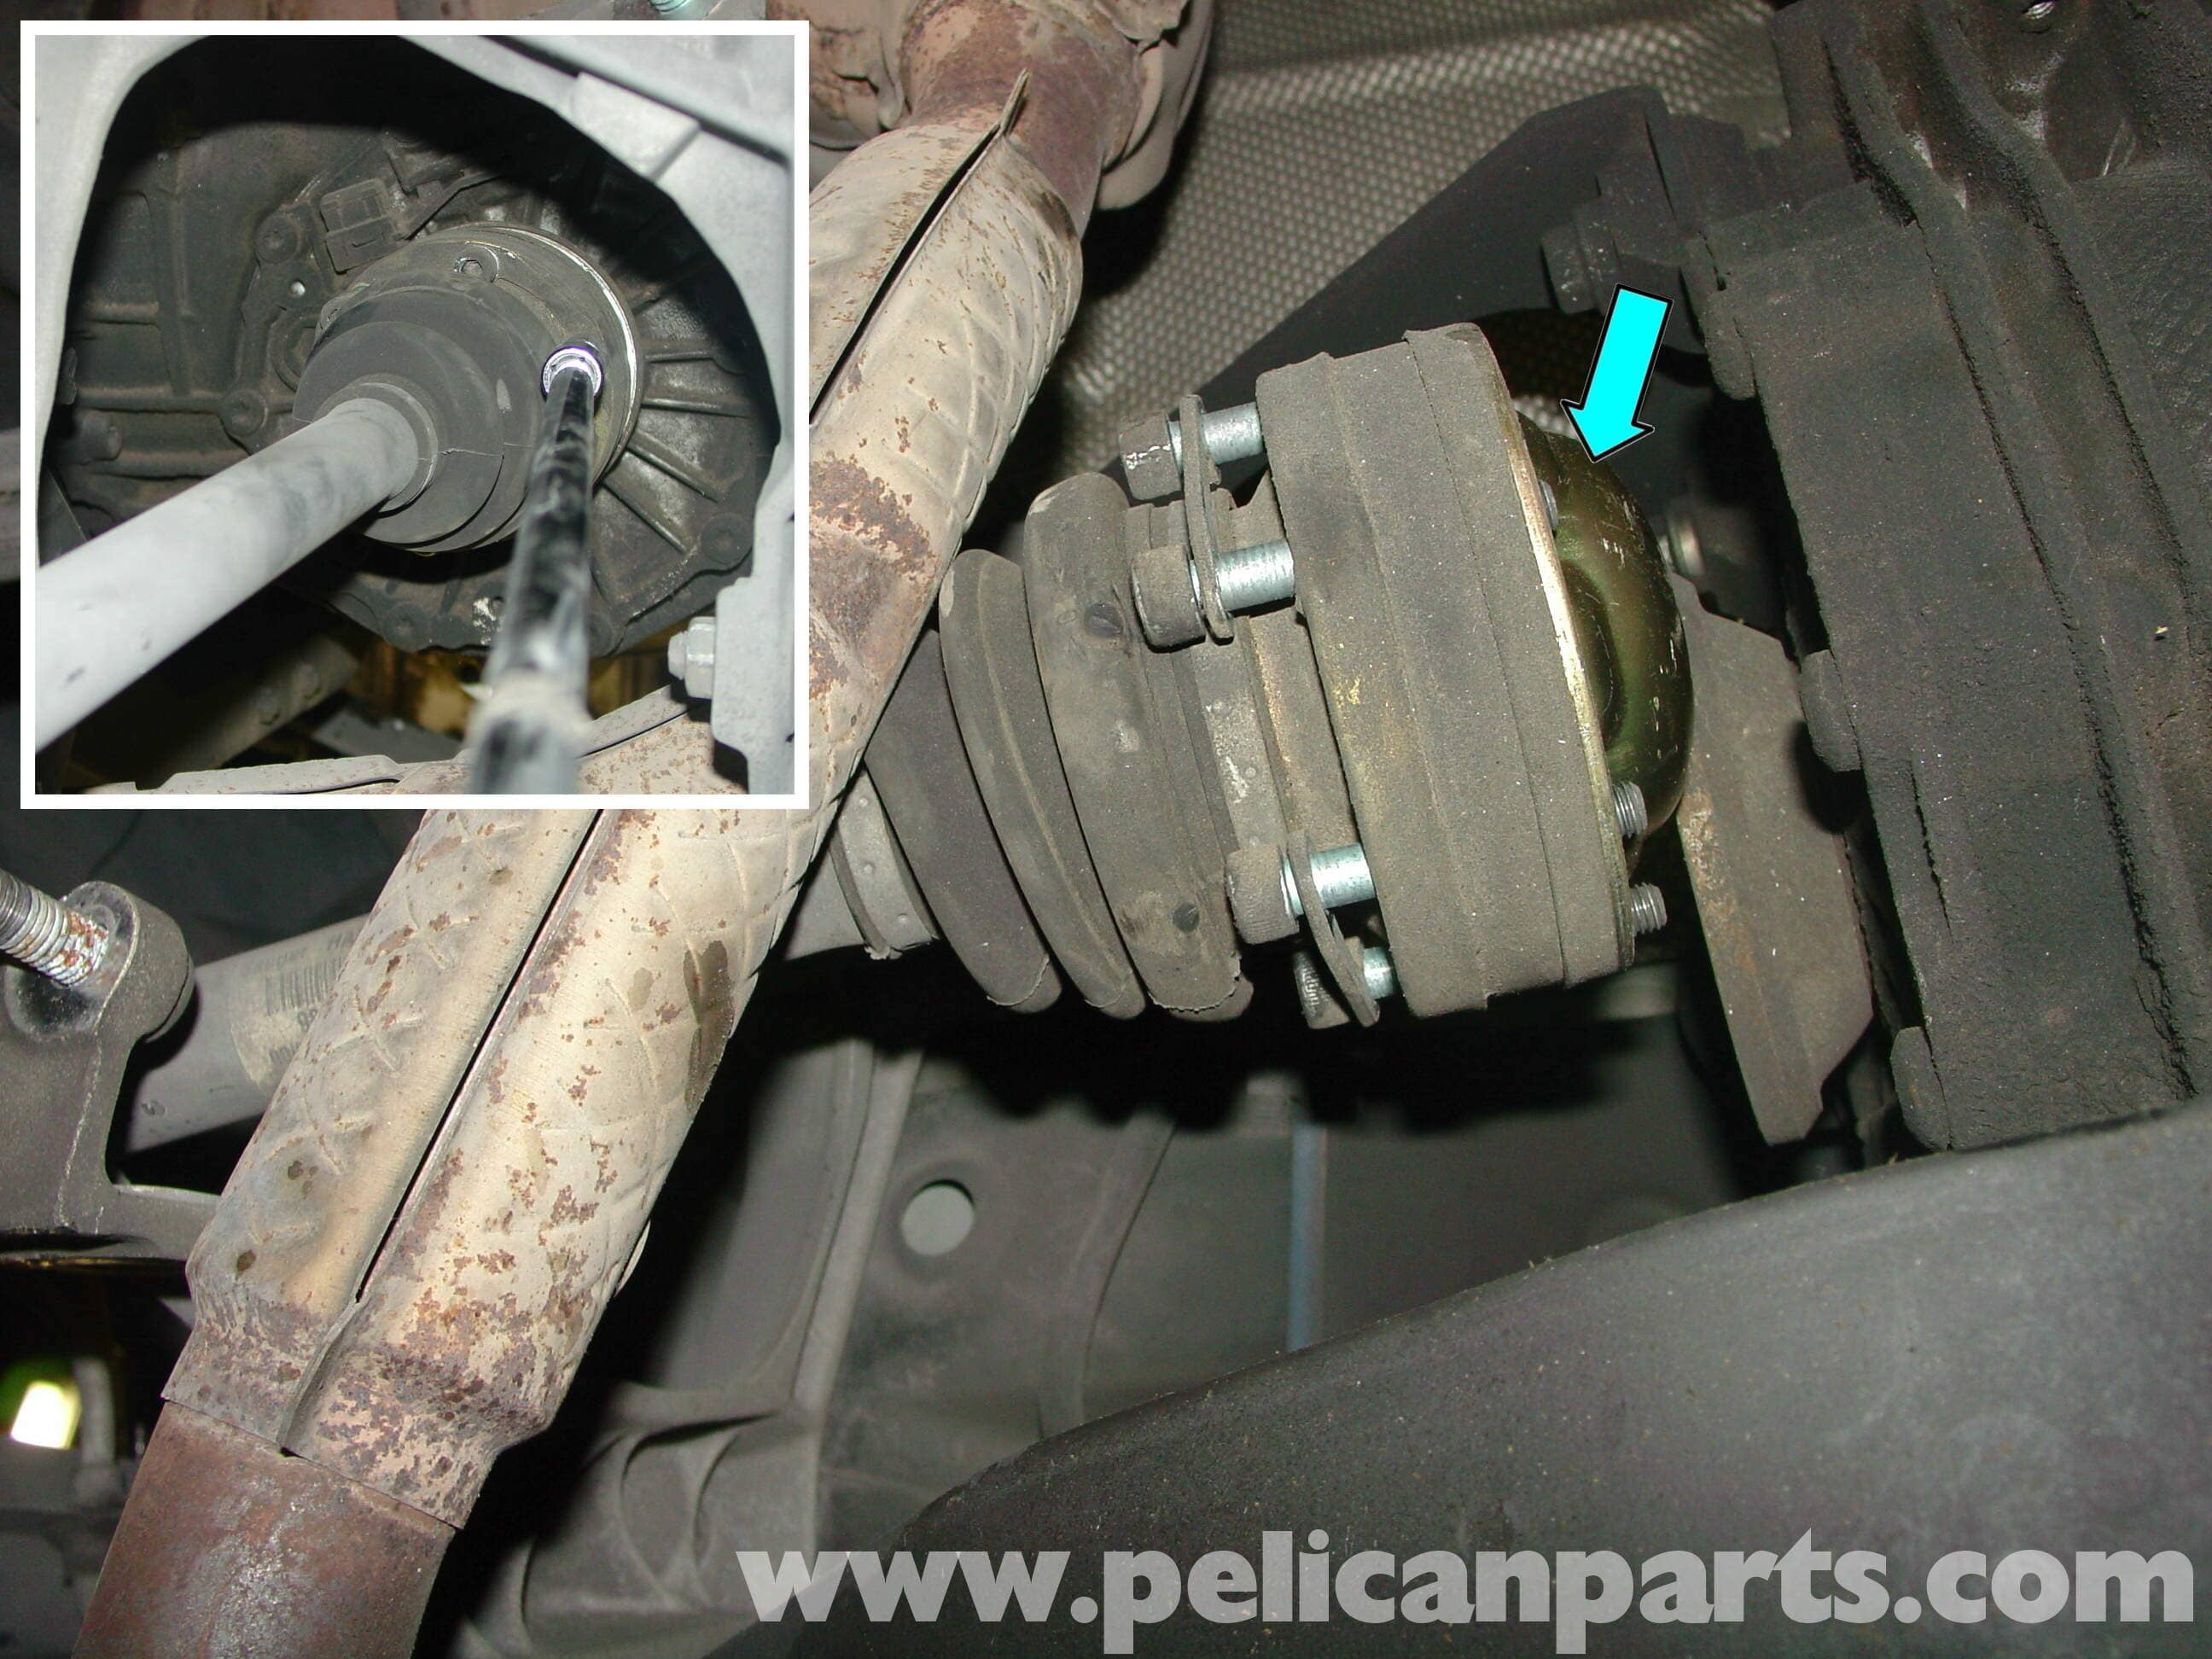 Porsche Boxster CV Joints and Boot / Axle Replacement - 986 / 987